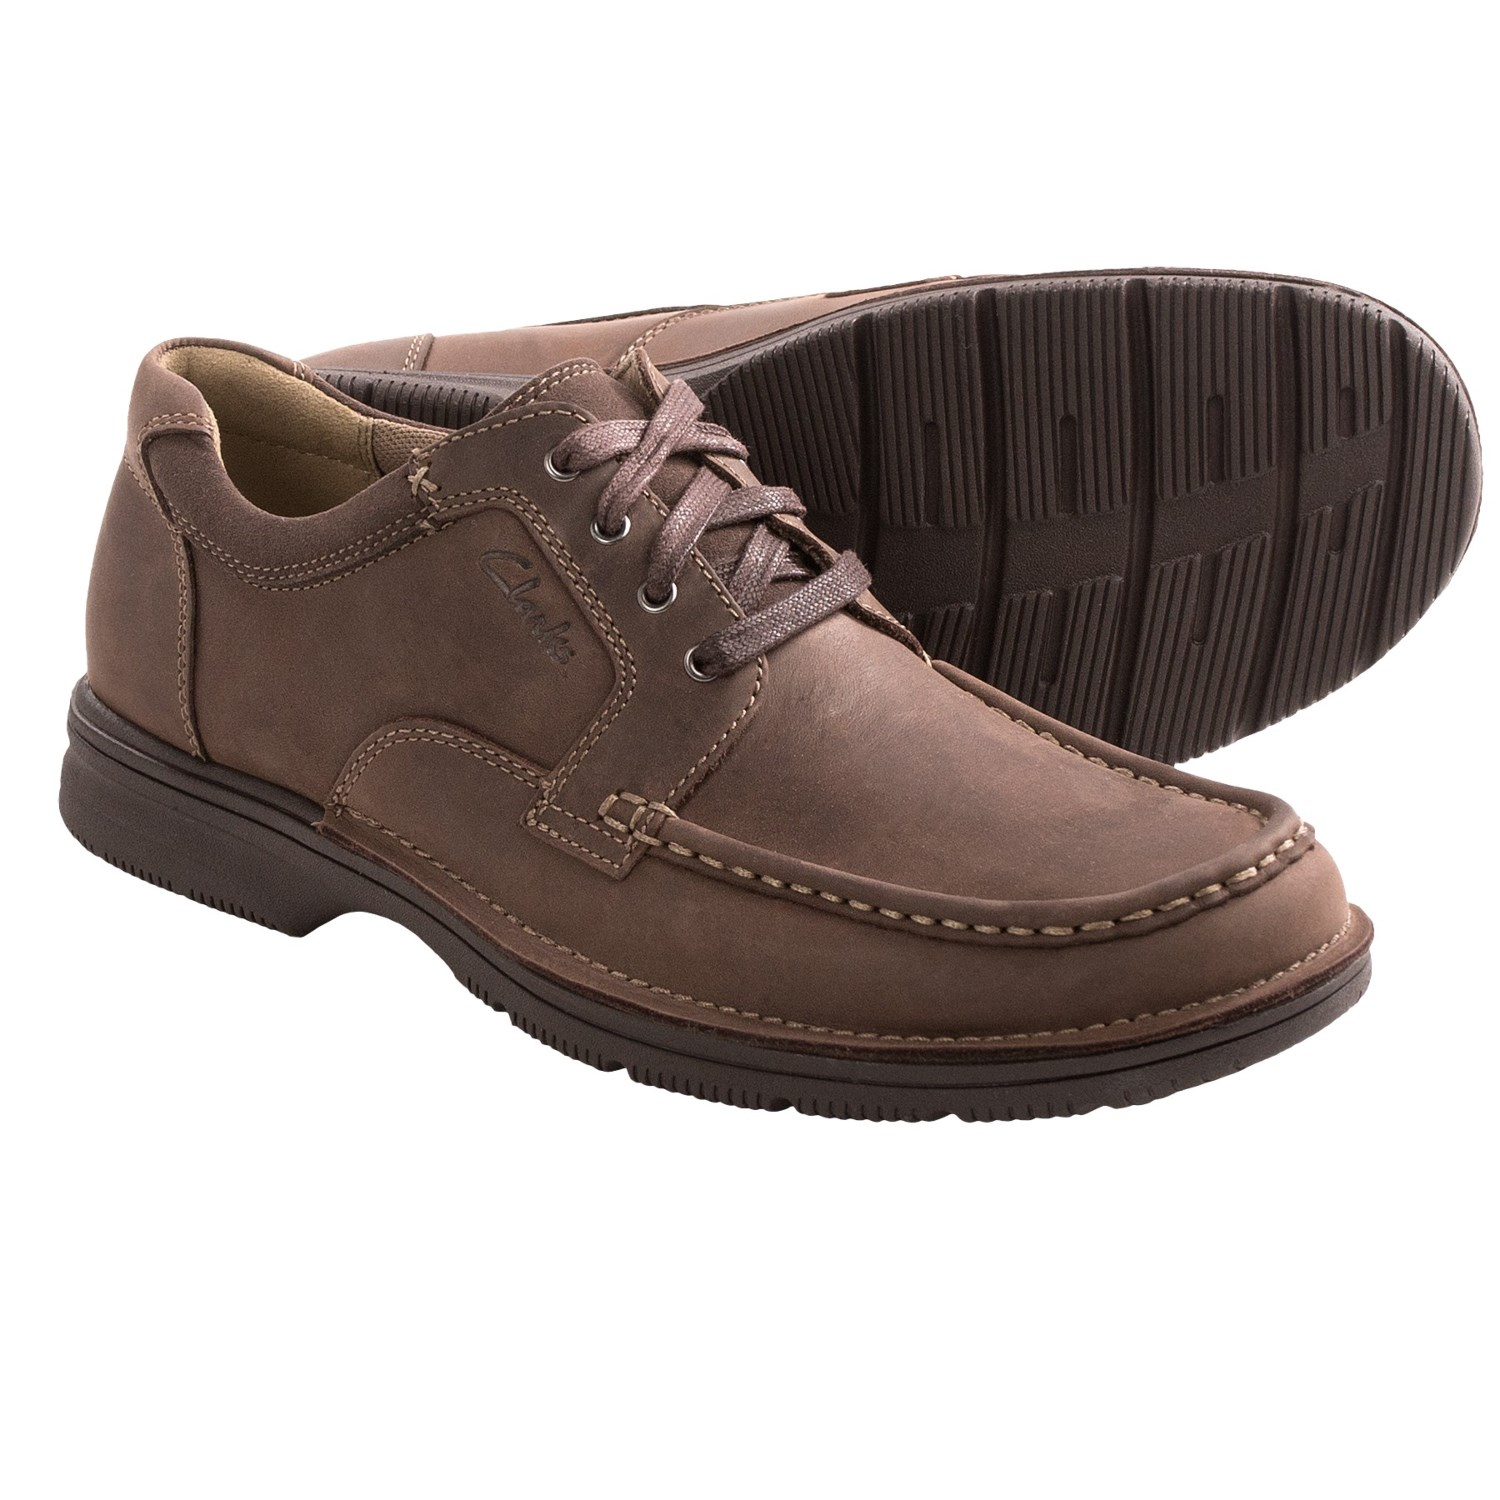 clarks shoes for men. Check out the exciting selection of Clarks shoes for men now at Stylight! You'll be amazed by the countless range of styles Clarks offers men of all ages.